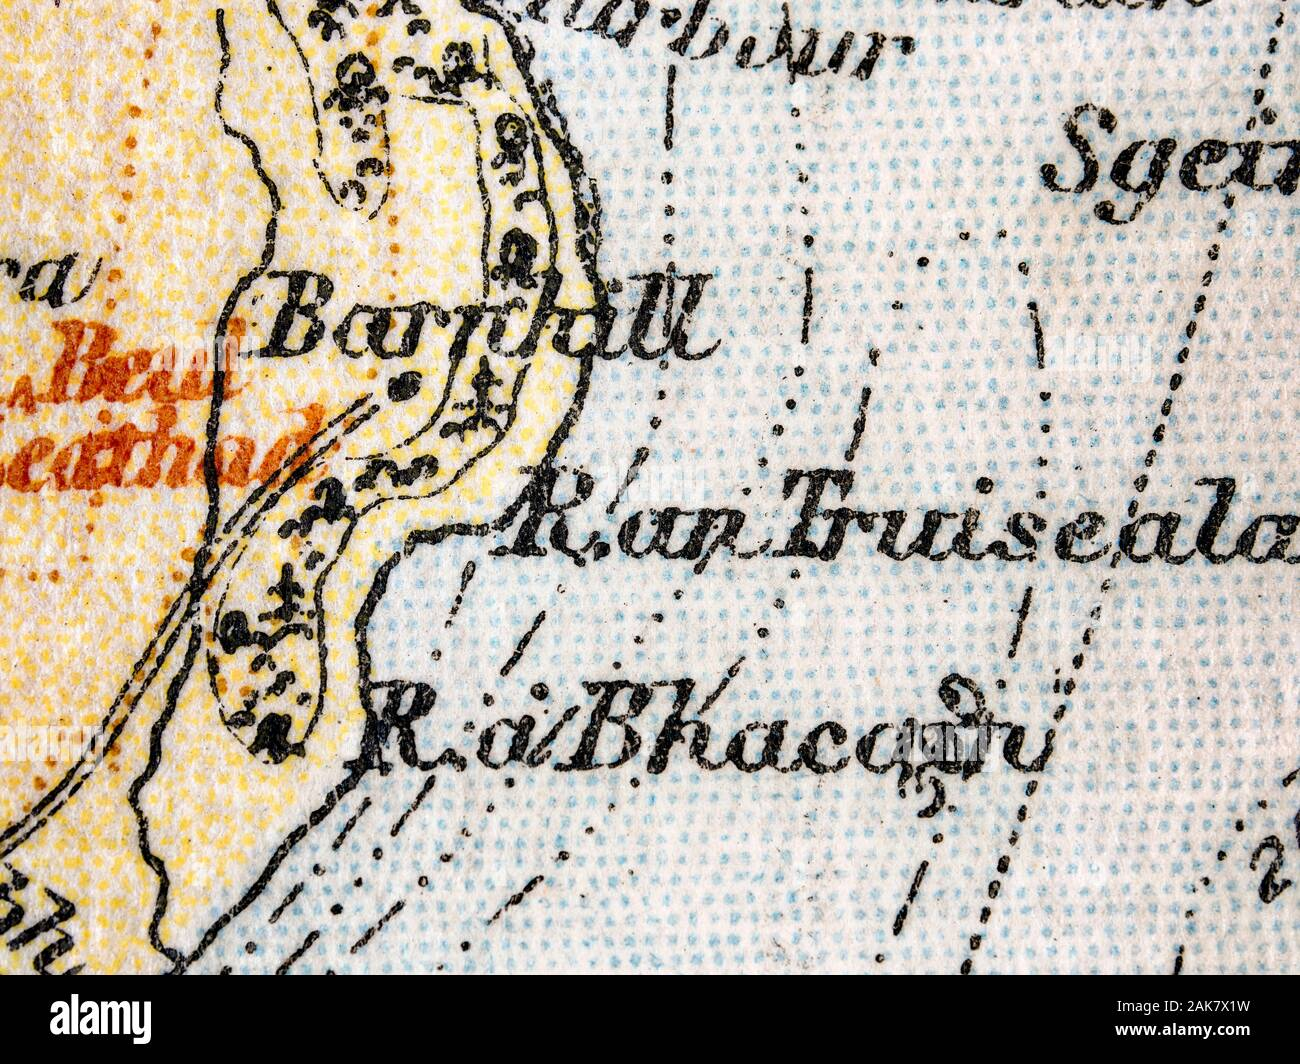 Picture of: Old Map Of The Isle Of Jura Scotland The Map Features Barnhill Where The Author George Orwell Completed His Novel 1984 Stock Photo Alamy